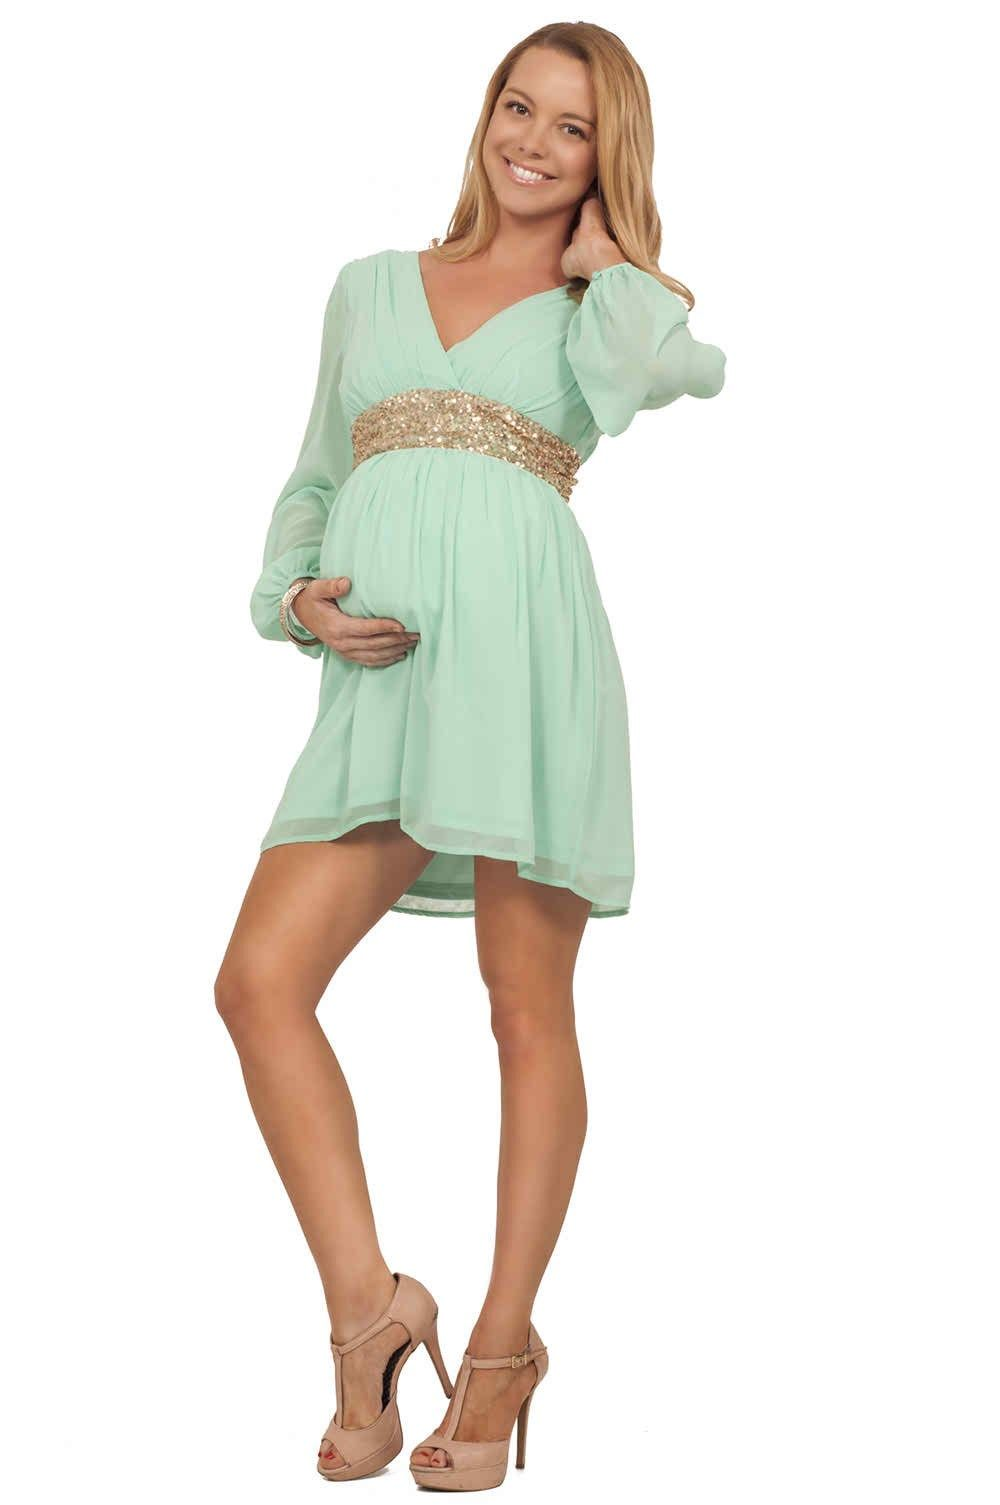 Sweet style petite maternity cloth maternity dresses pinterest hot from hollywood maternity pregnant long sheer sleeve gold sequin empire waist bridesmaid dress ombrellifo Image collections